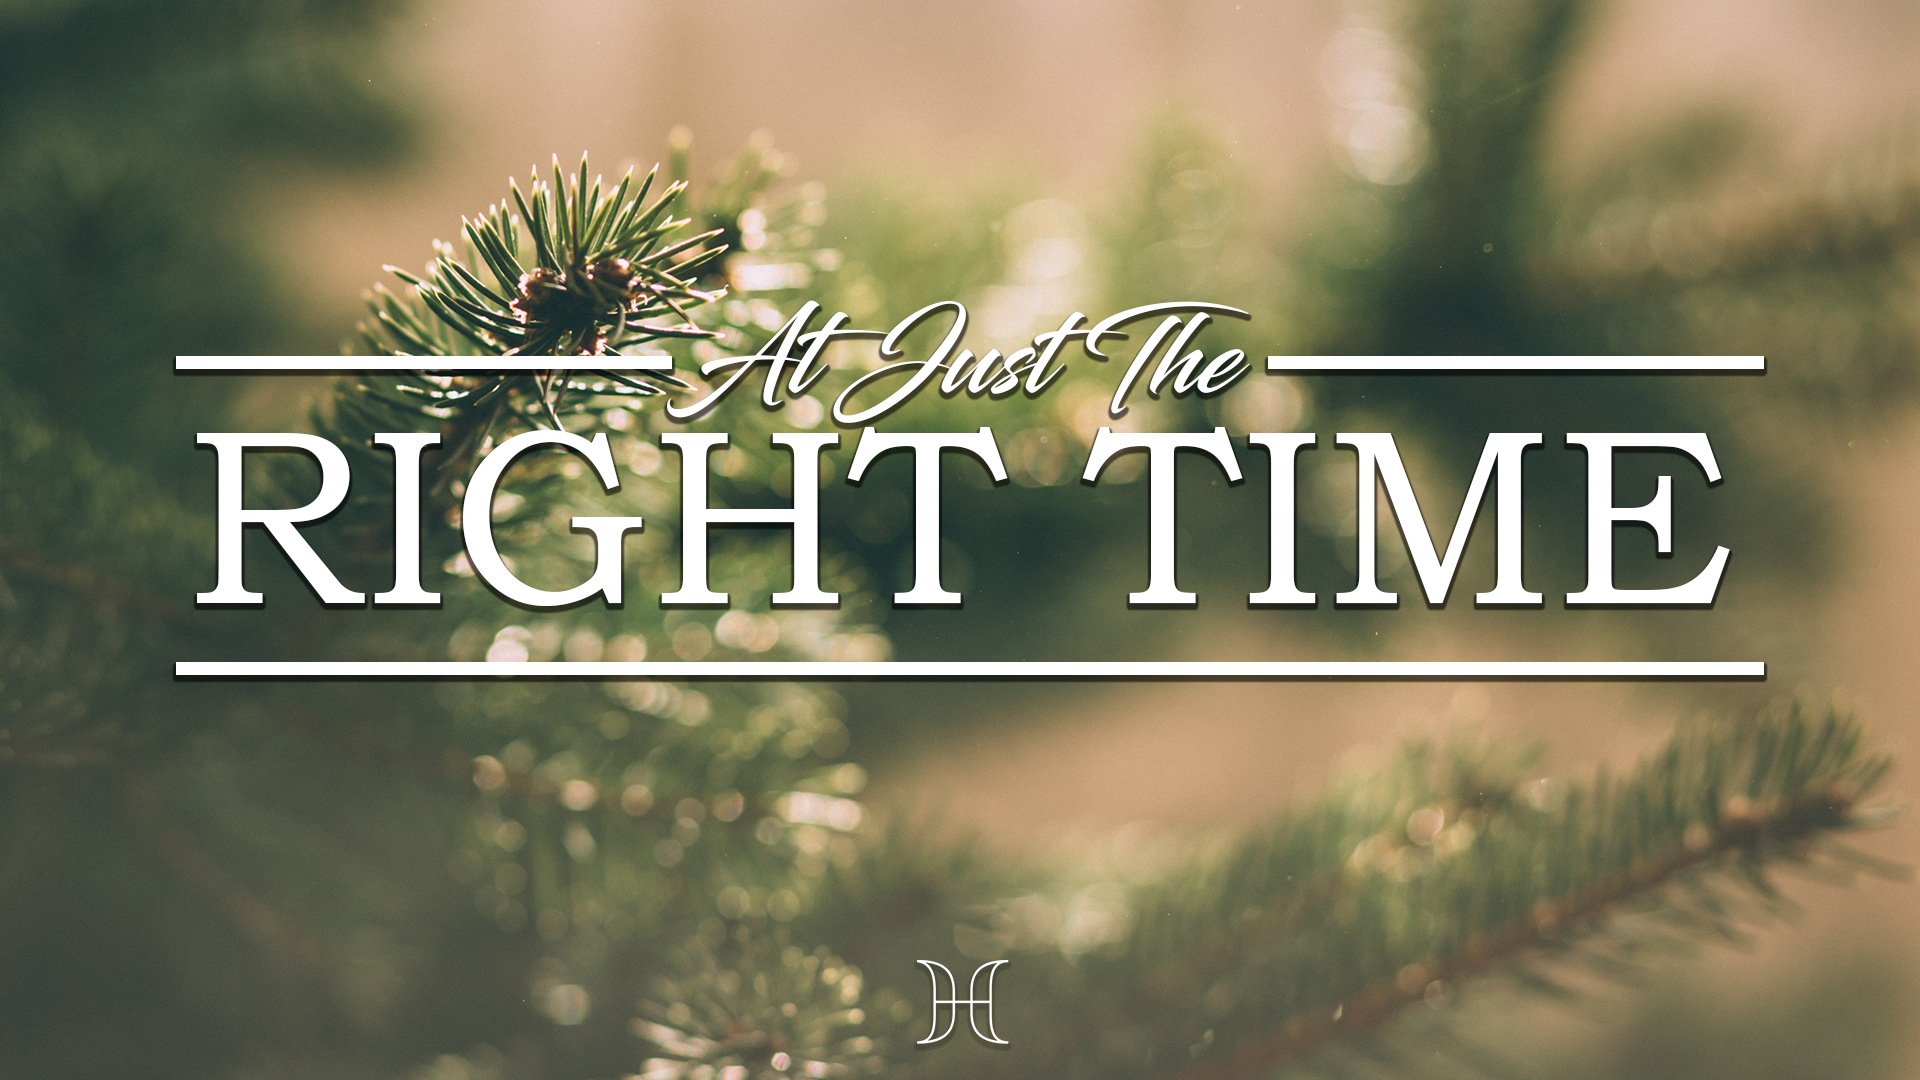 Current Series: At Just the Right Time